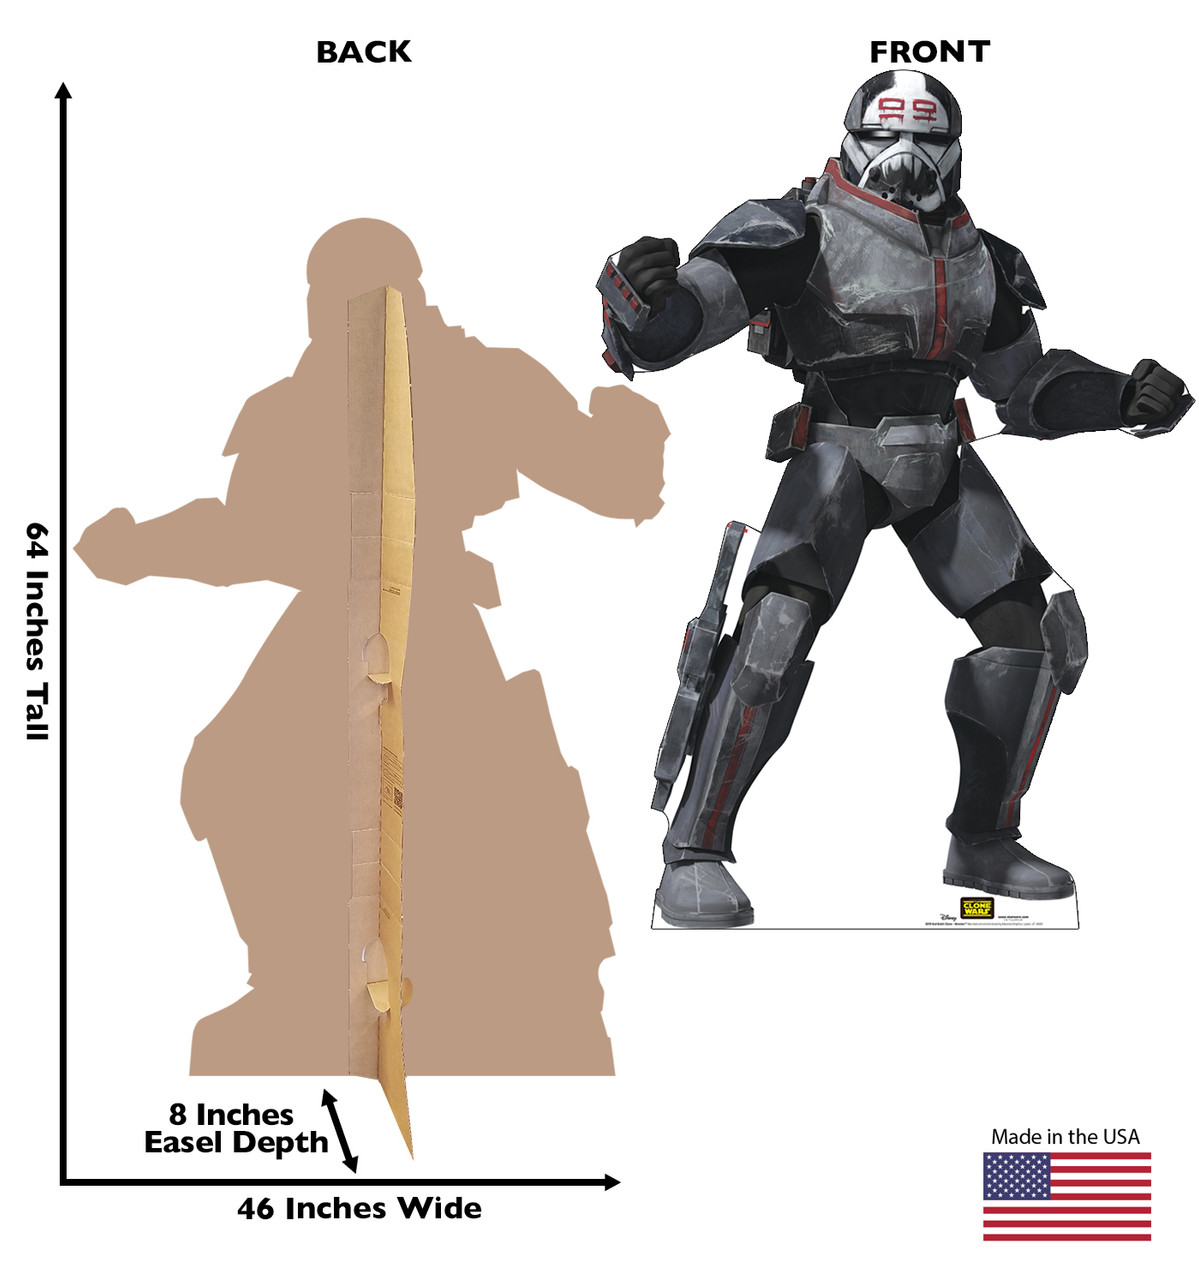 Life-size cardboard standee of the character Bad Batch Clone Wrecker from Clone Wars Season 7 with front and back dimensions.